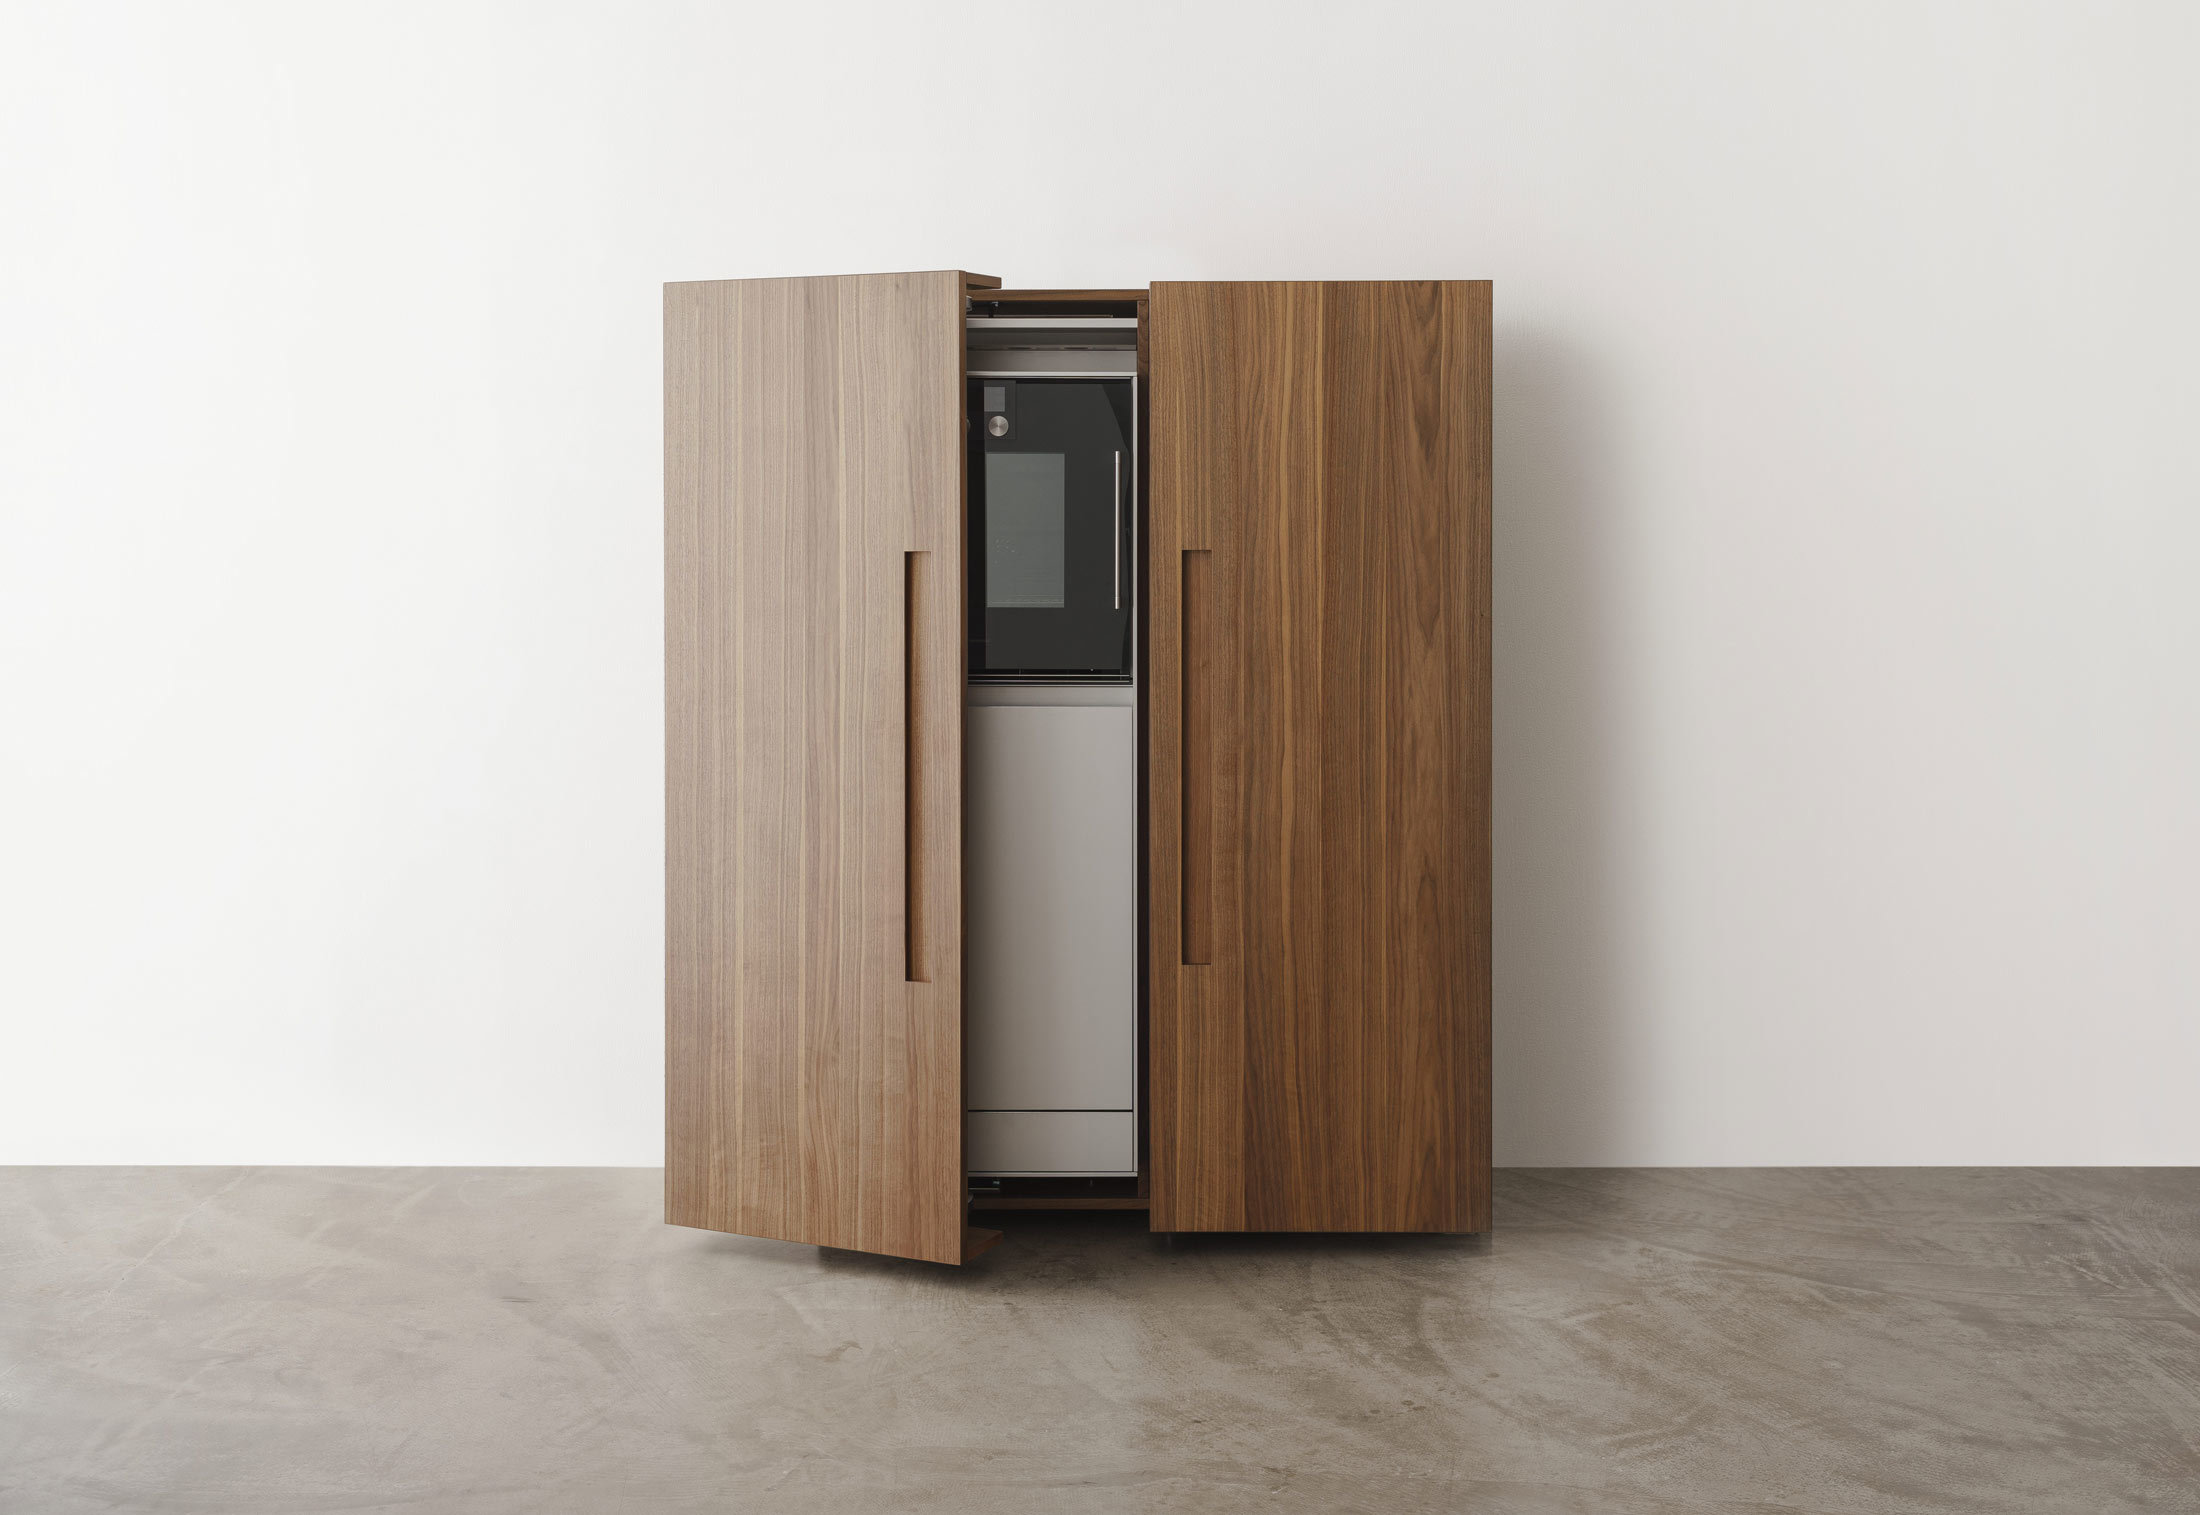 Bulthaup B2 Kitchen Appliance Housing Cabinet By Bulthaup